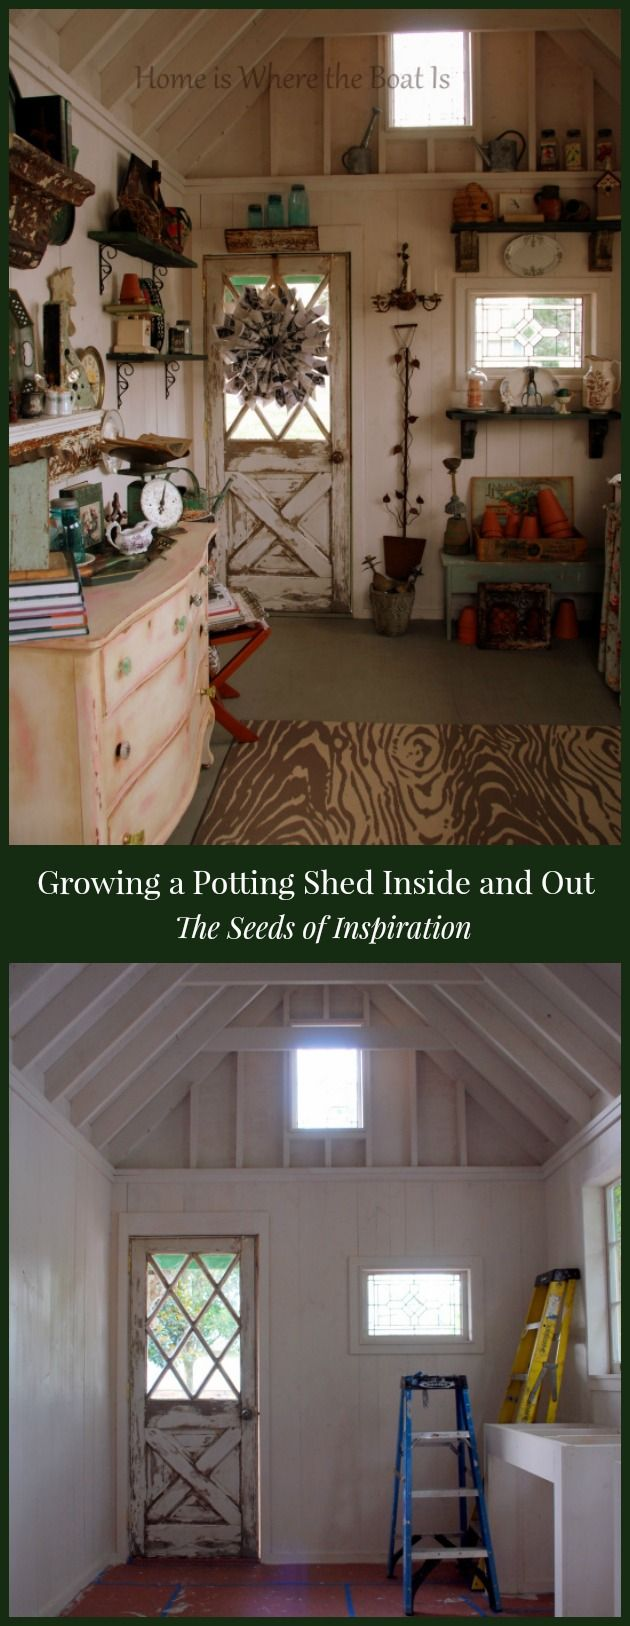 Growing a Potting Shed from the ground up with seeds of inspiration from Country Gardens magazine. A blend of new and salvage and materials, galvanized sheet metal counters and windows dressed with landscaping burlap. Lots of DIY inspiration and projects!  #gardening #pottingshed